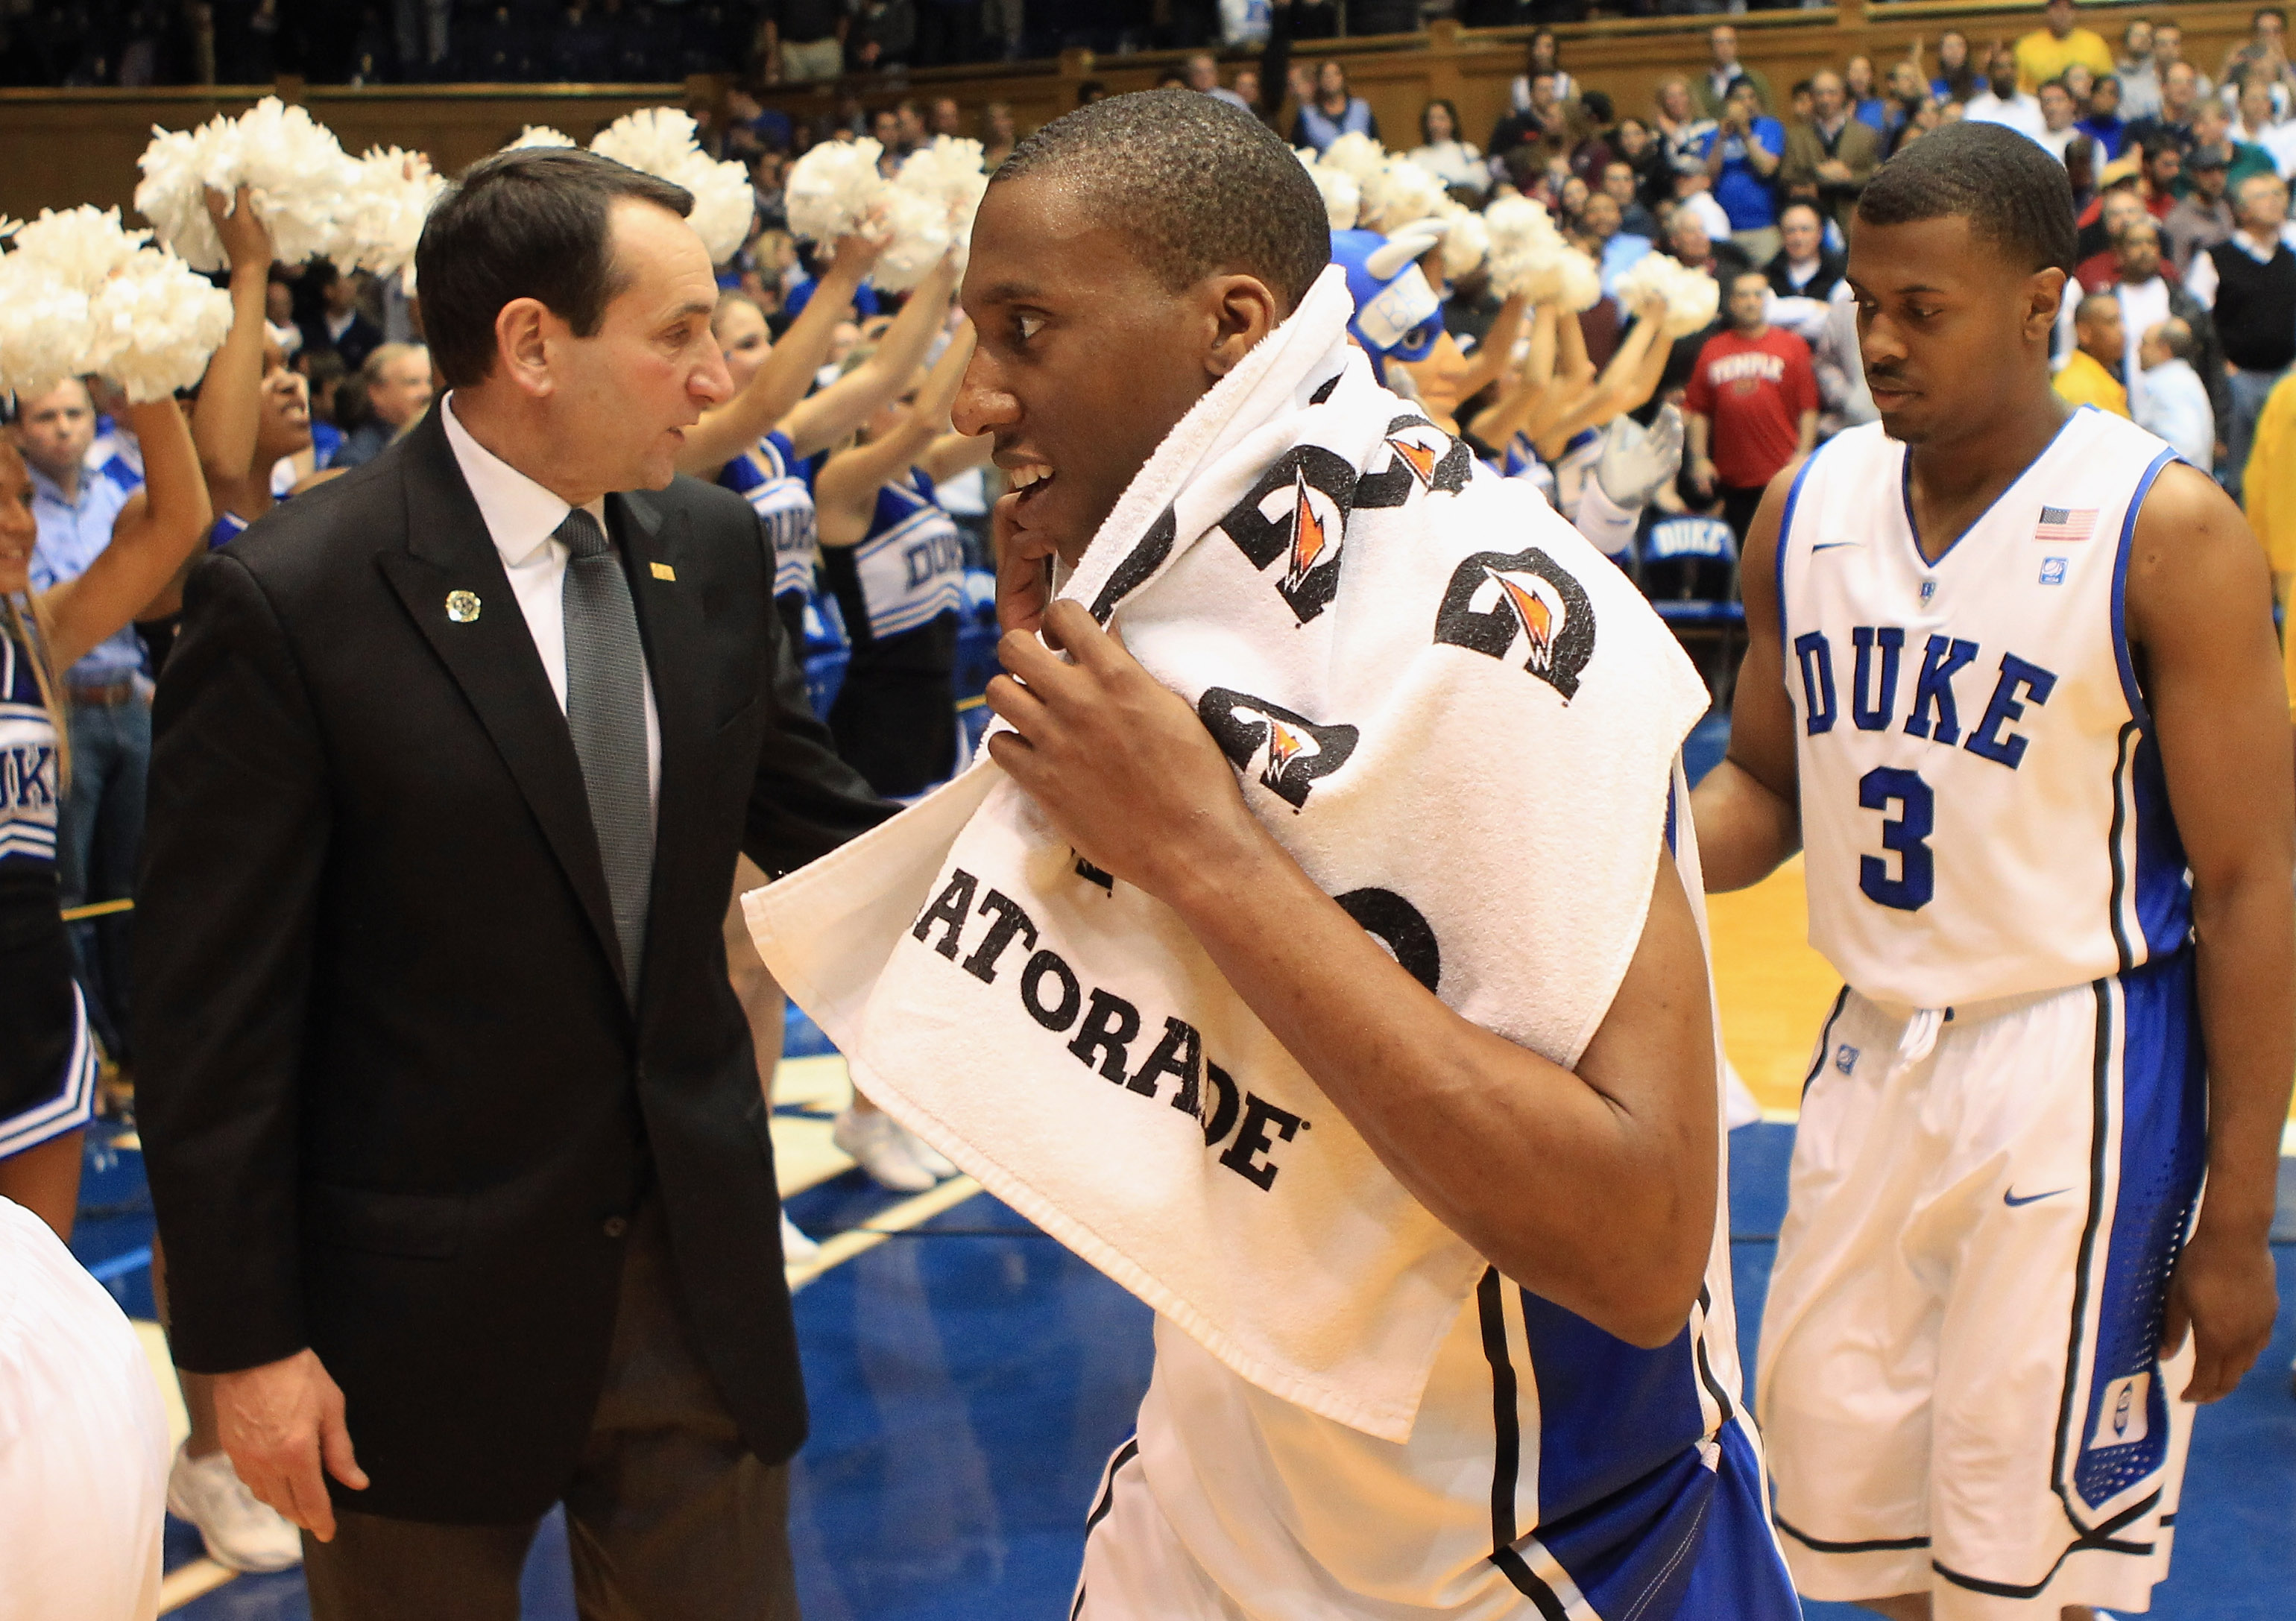 DURHAM, NC - FEBRUARY 23:  Head coach Mike Krzyzewski congratulates players Nolan Smith #2 and Tyler Thornton #3 of the Duke Blue Devils after their 78-61 victory over the Temple Owls at Cameron Indoor Stadium on February 23, 2011 in Durham, North Carolin